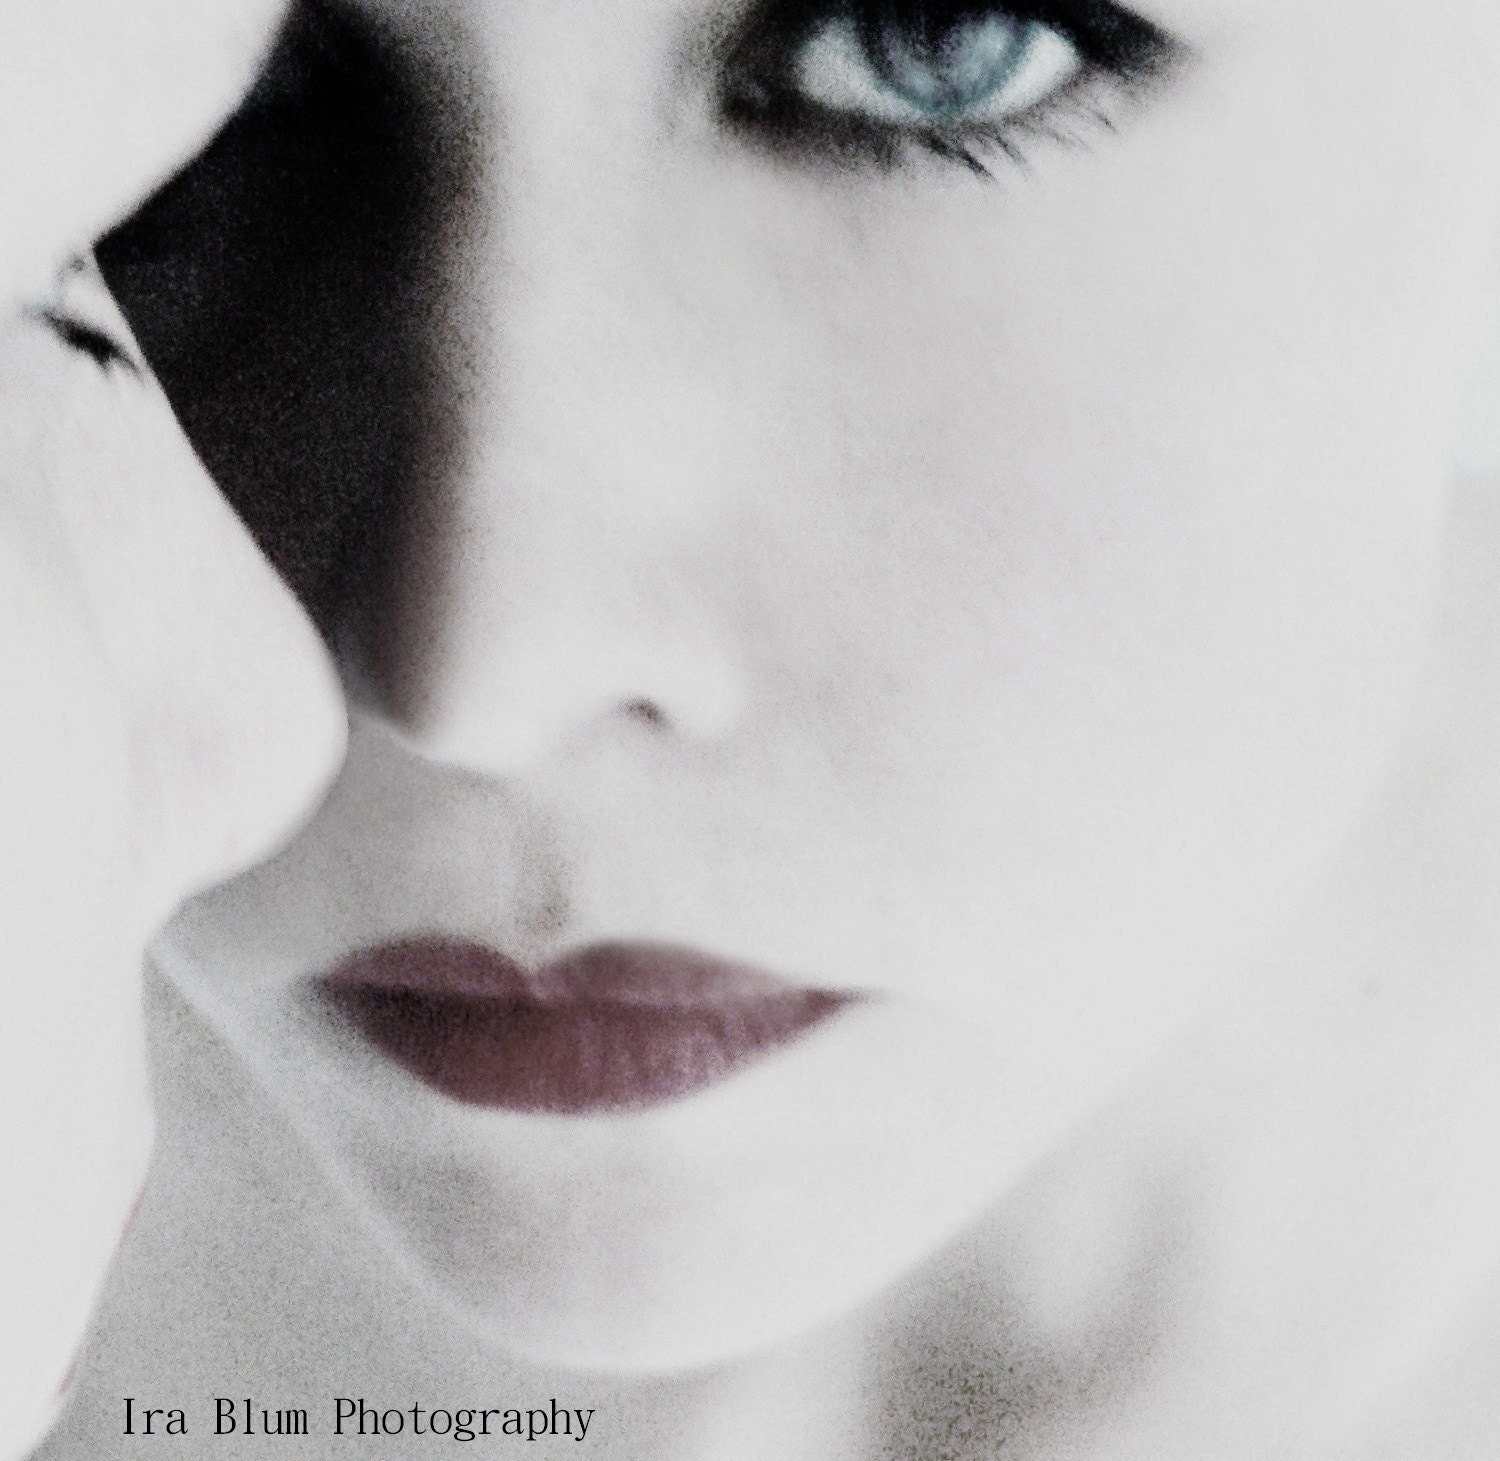 Woman Portrait Photograph // Fine Art Photography // White Winter Dream